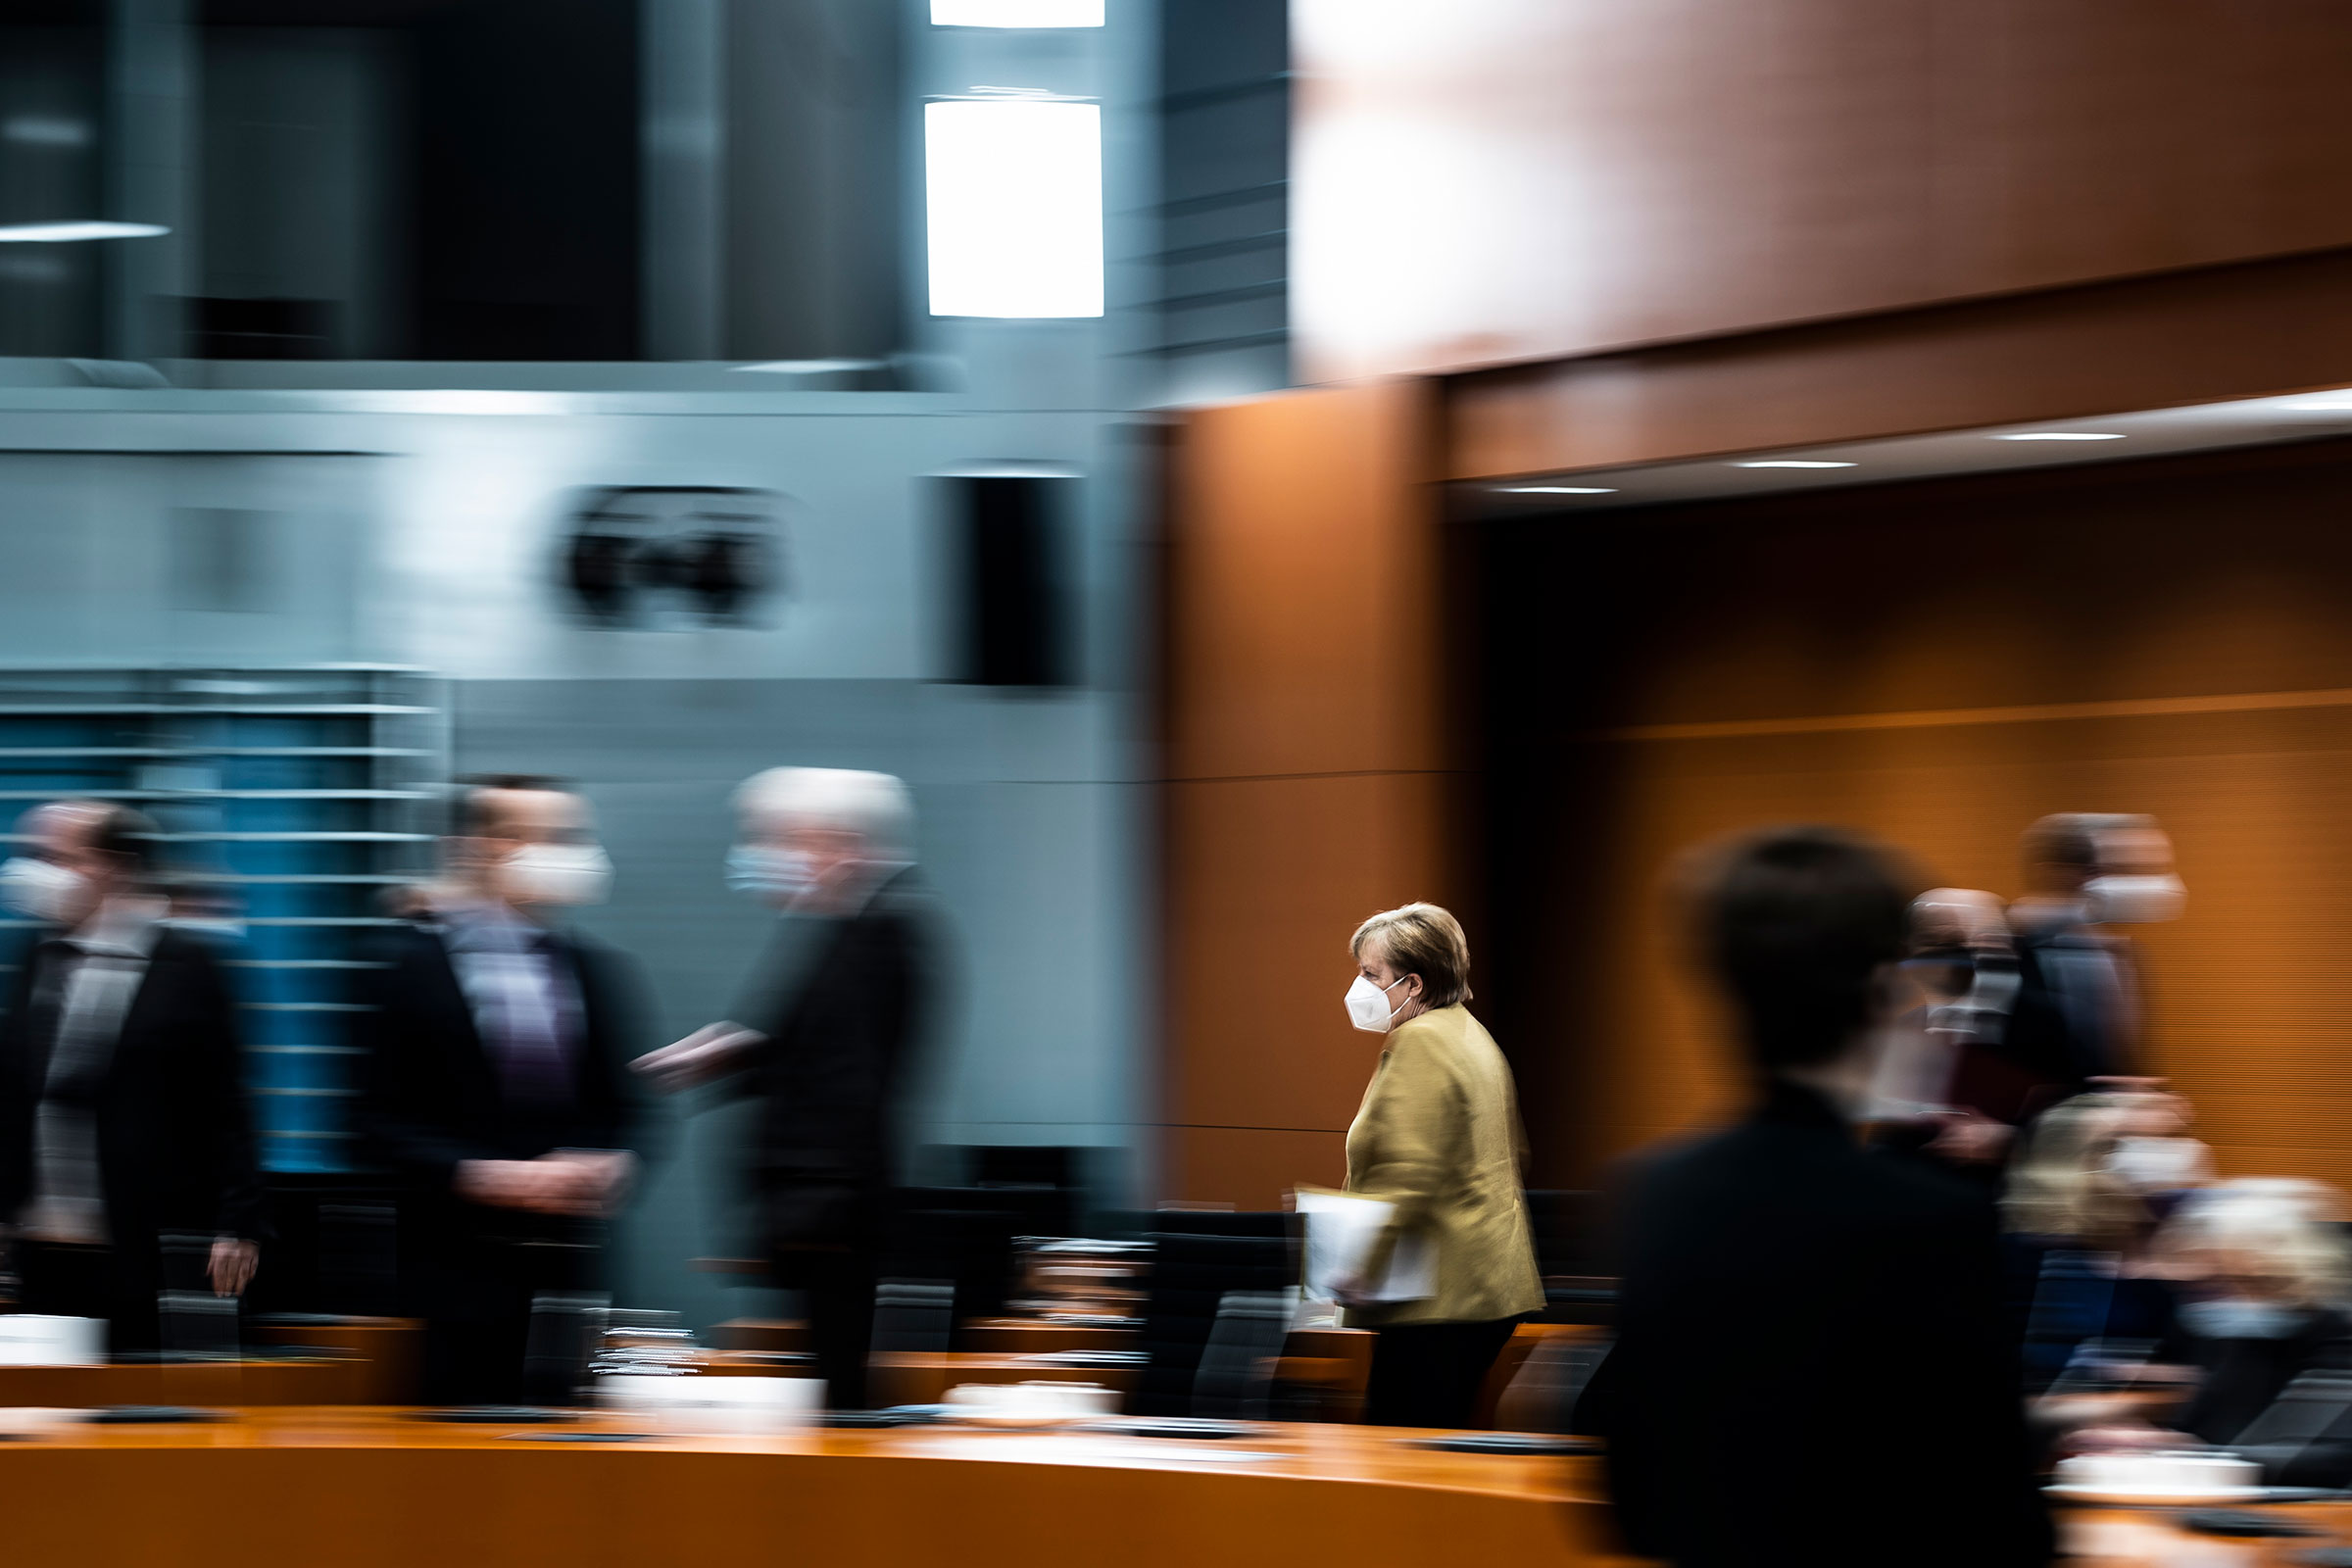 German Chancellor Angela Merkel arrives for the weekly meeting of the cabinet in Berlin, Germany on March 17, 2021.